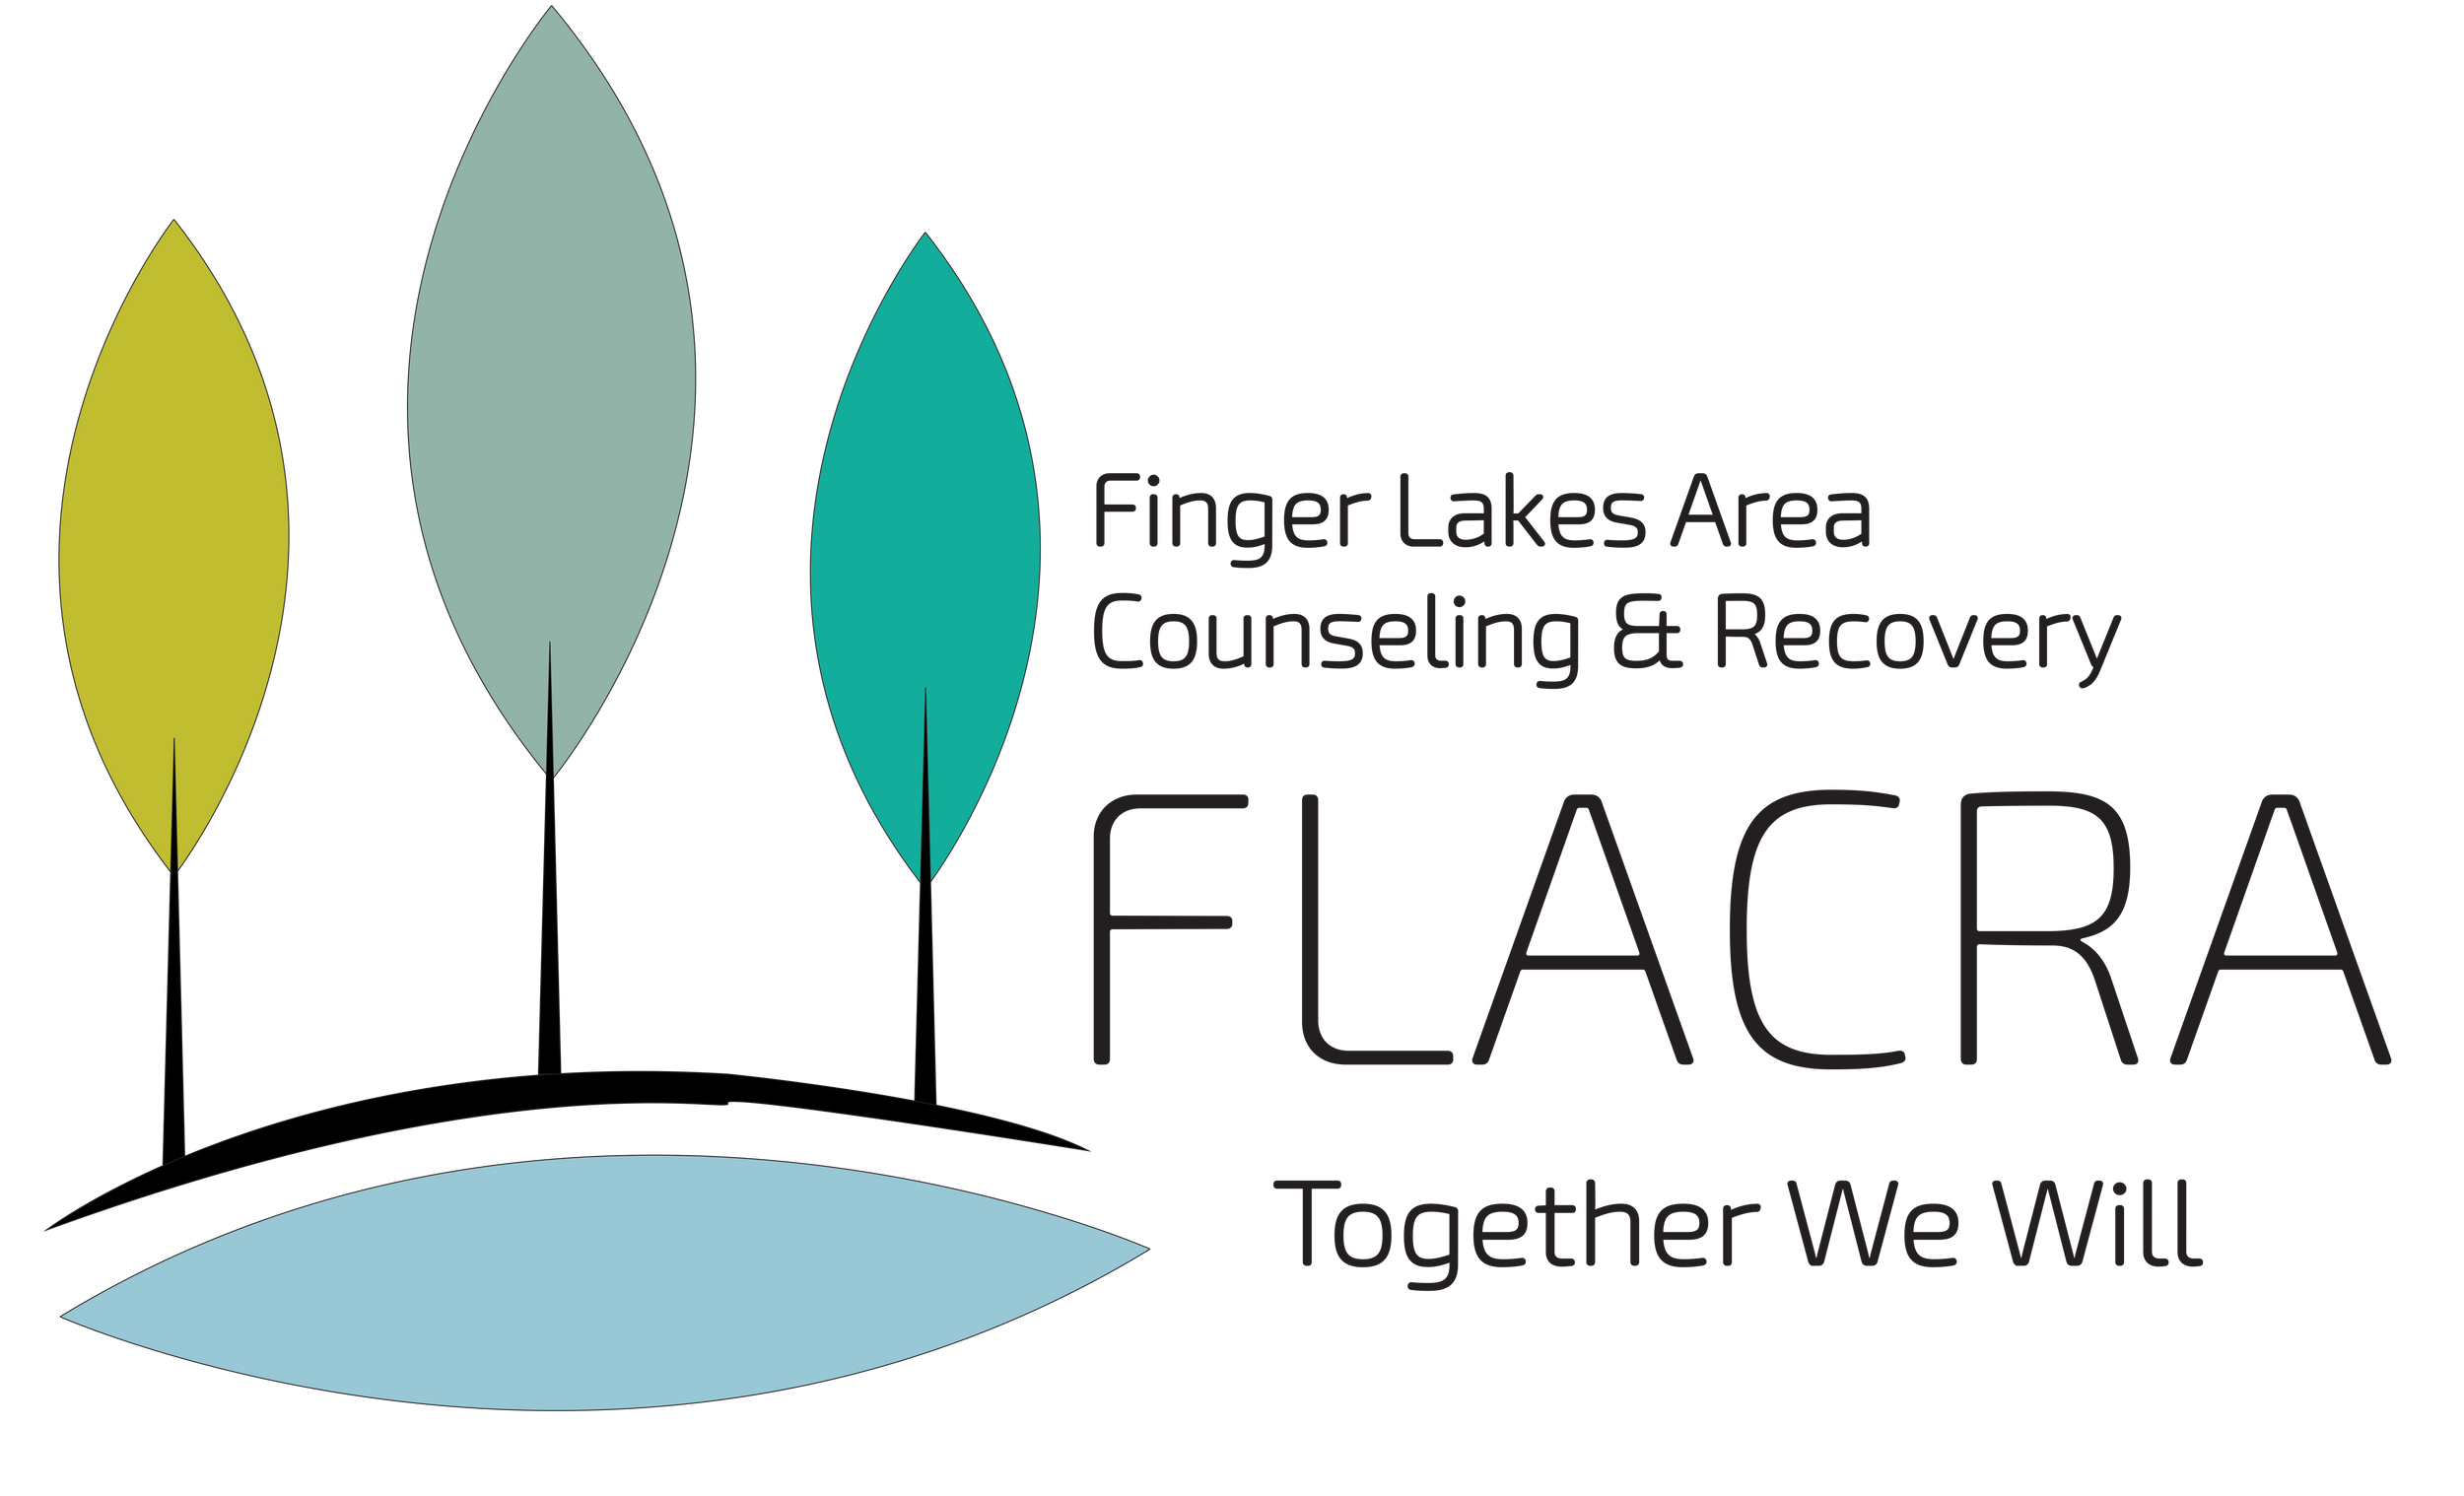 FLACRA will open new recovery center in Ontario County